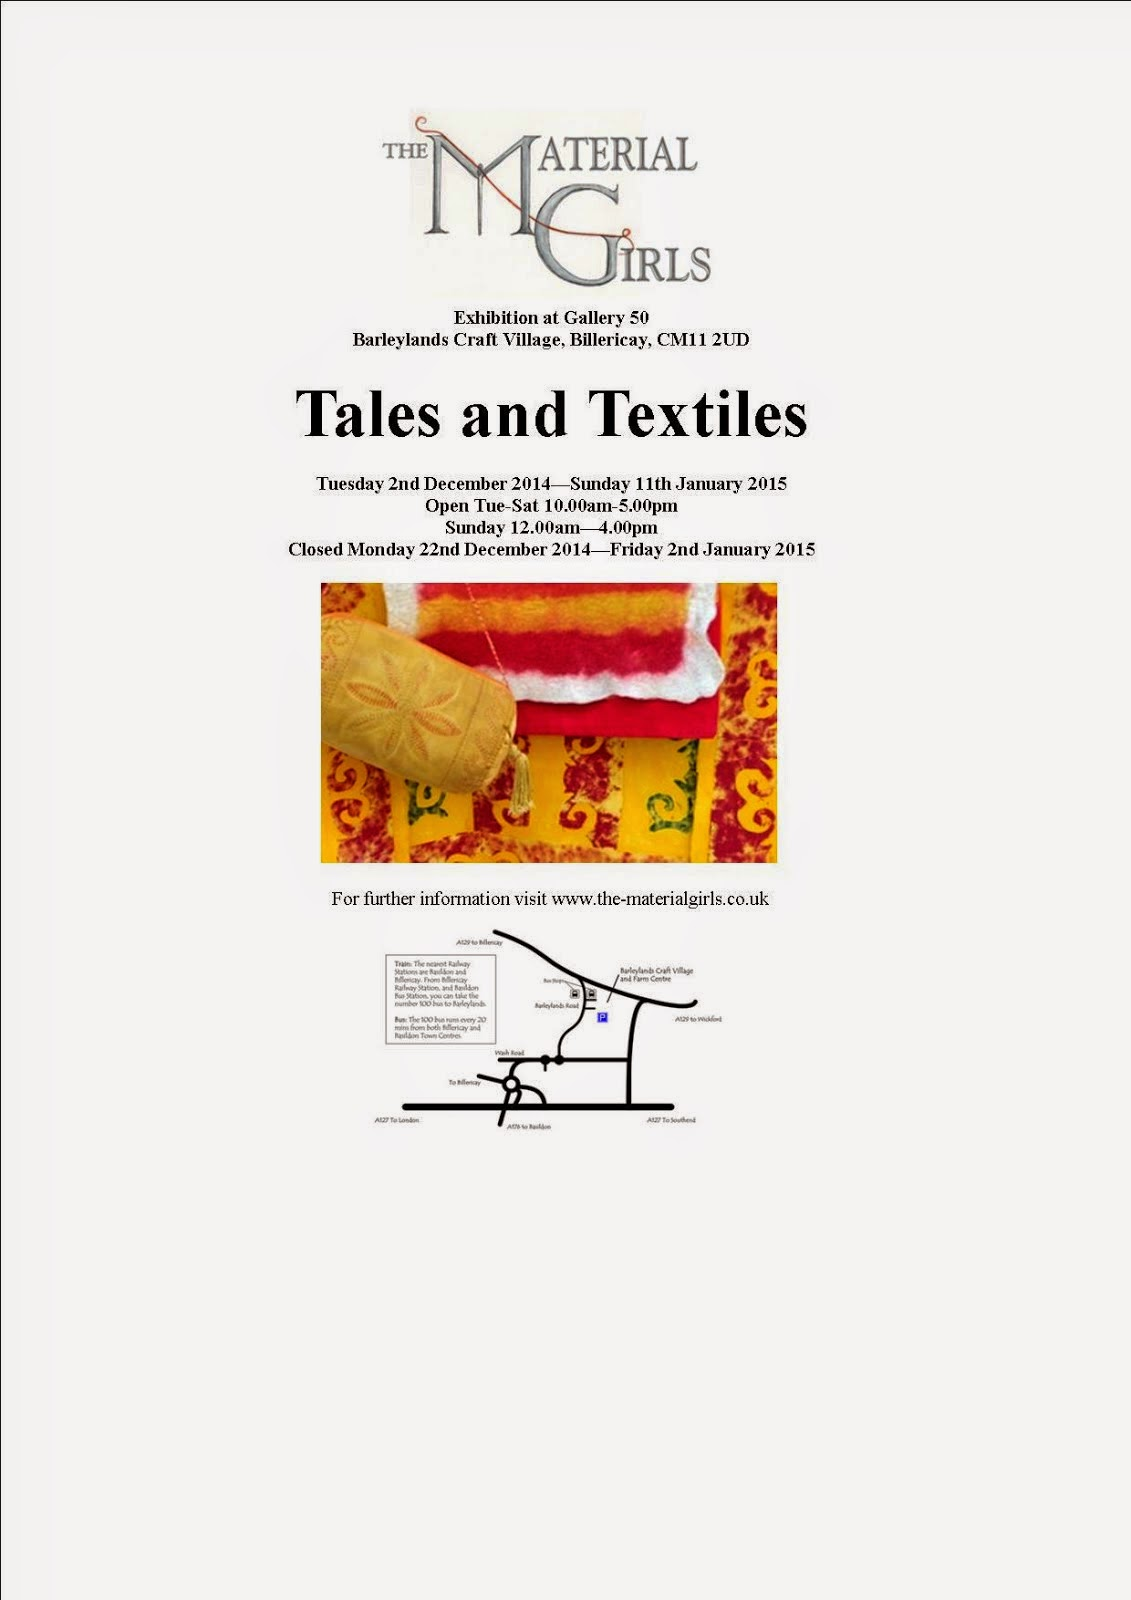 Tales and Textiles Exhibition